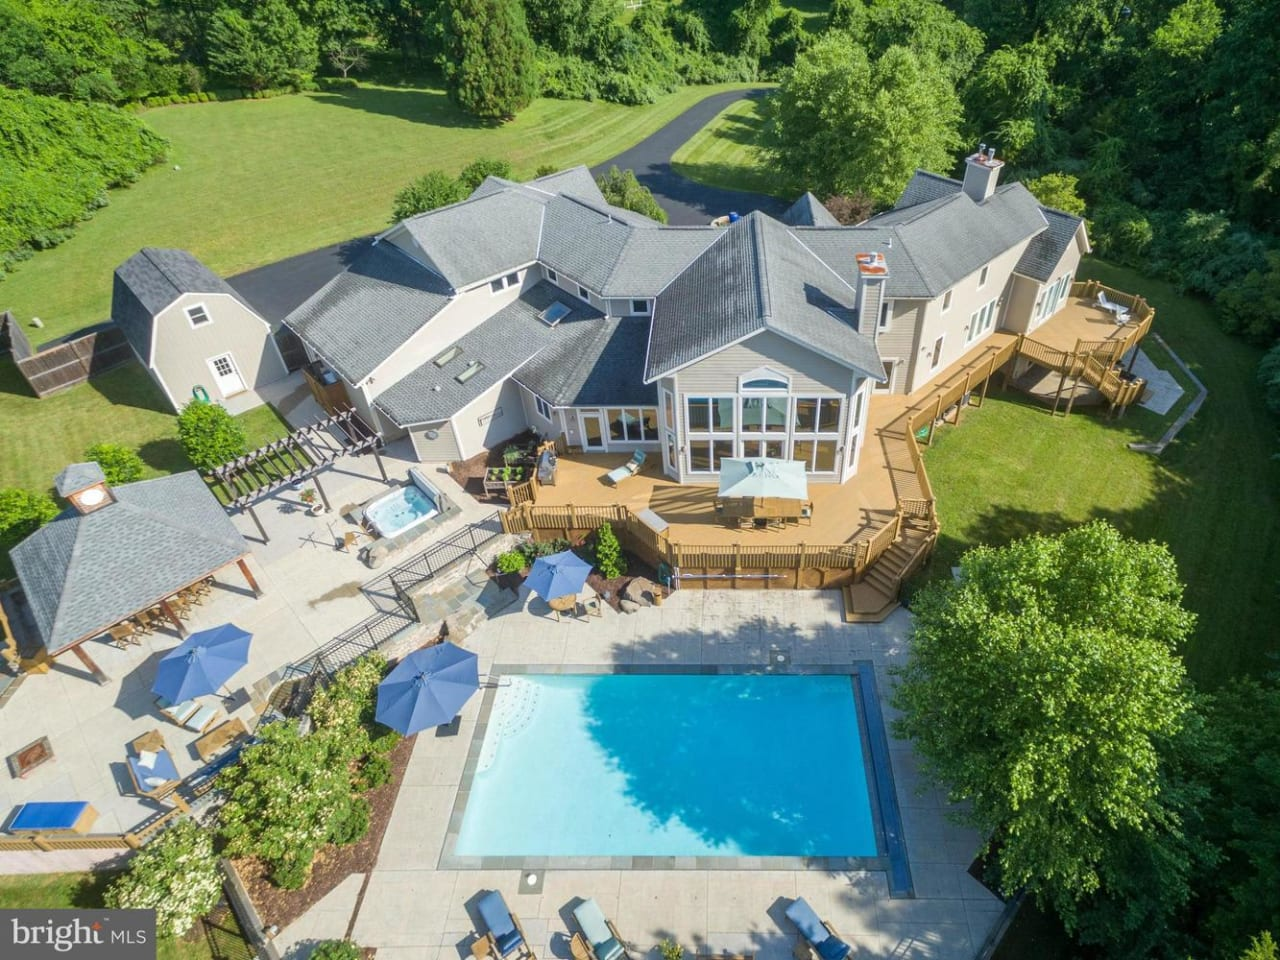 207 Donmore Dr